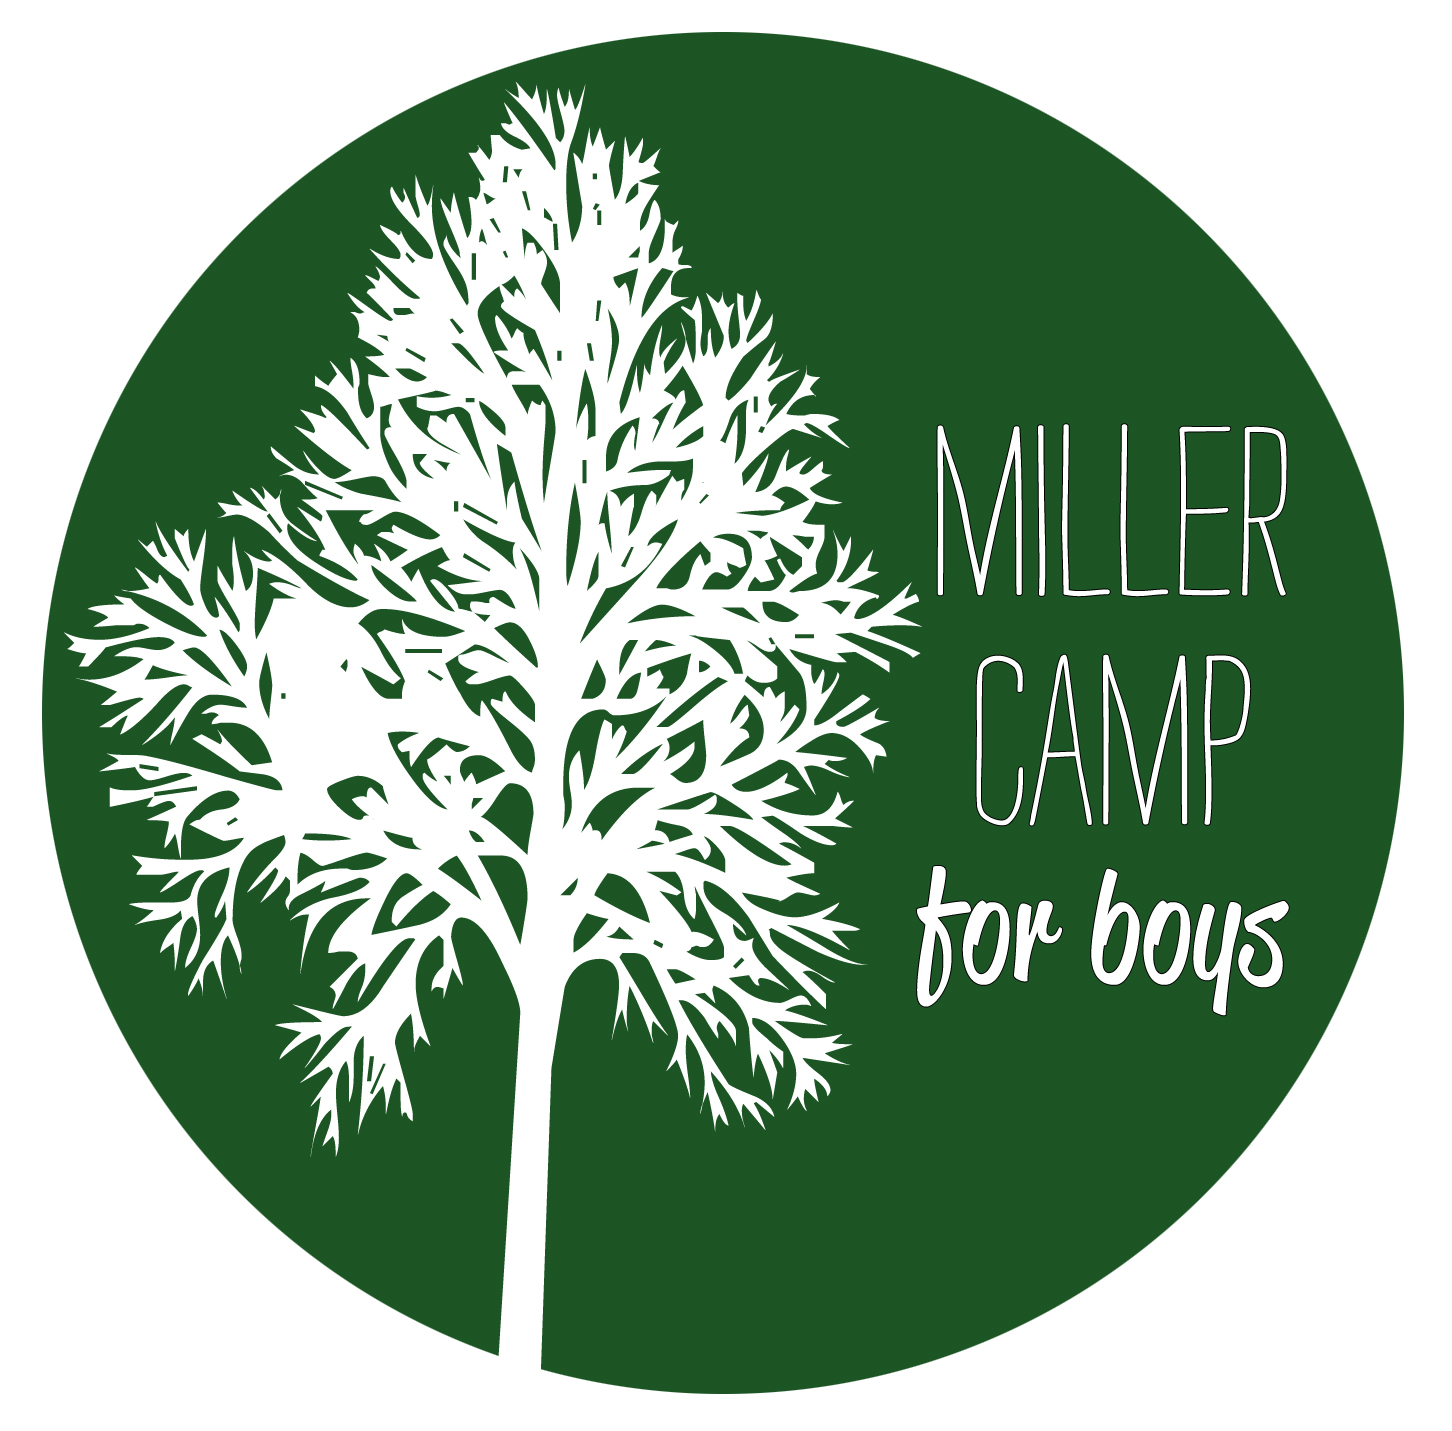 Miller Camp for Boys